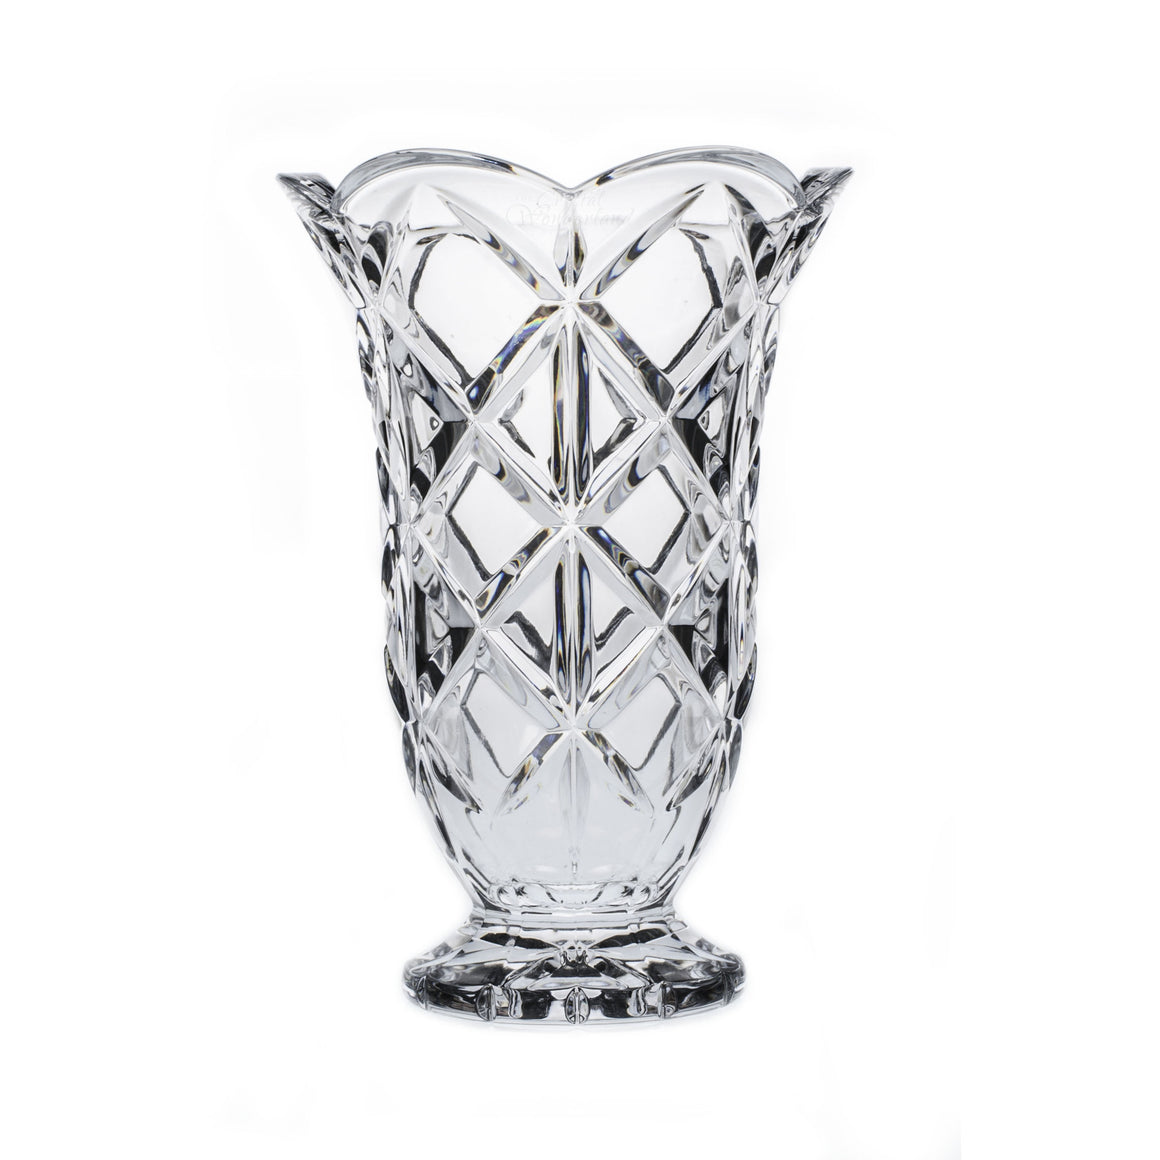 Malai Crystal Vase - The Crystal Wonderland - 1